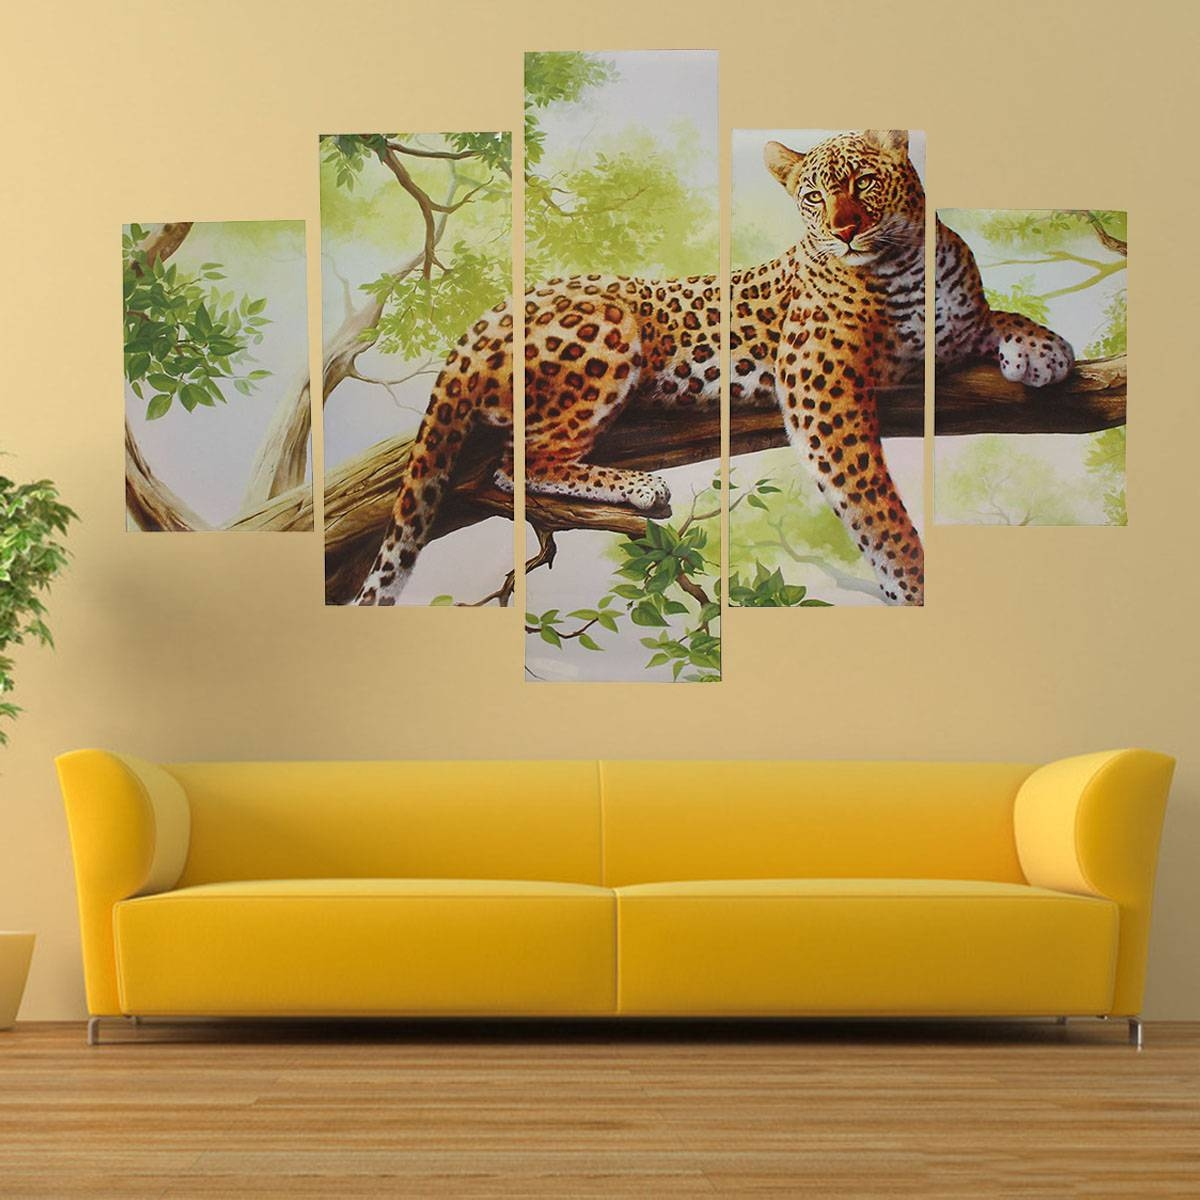 5Pcs Combination Canvas Print Painting Leopard Modern Wall Art Throughout Current Leopard Print Wall Art (View 1 of 25)